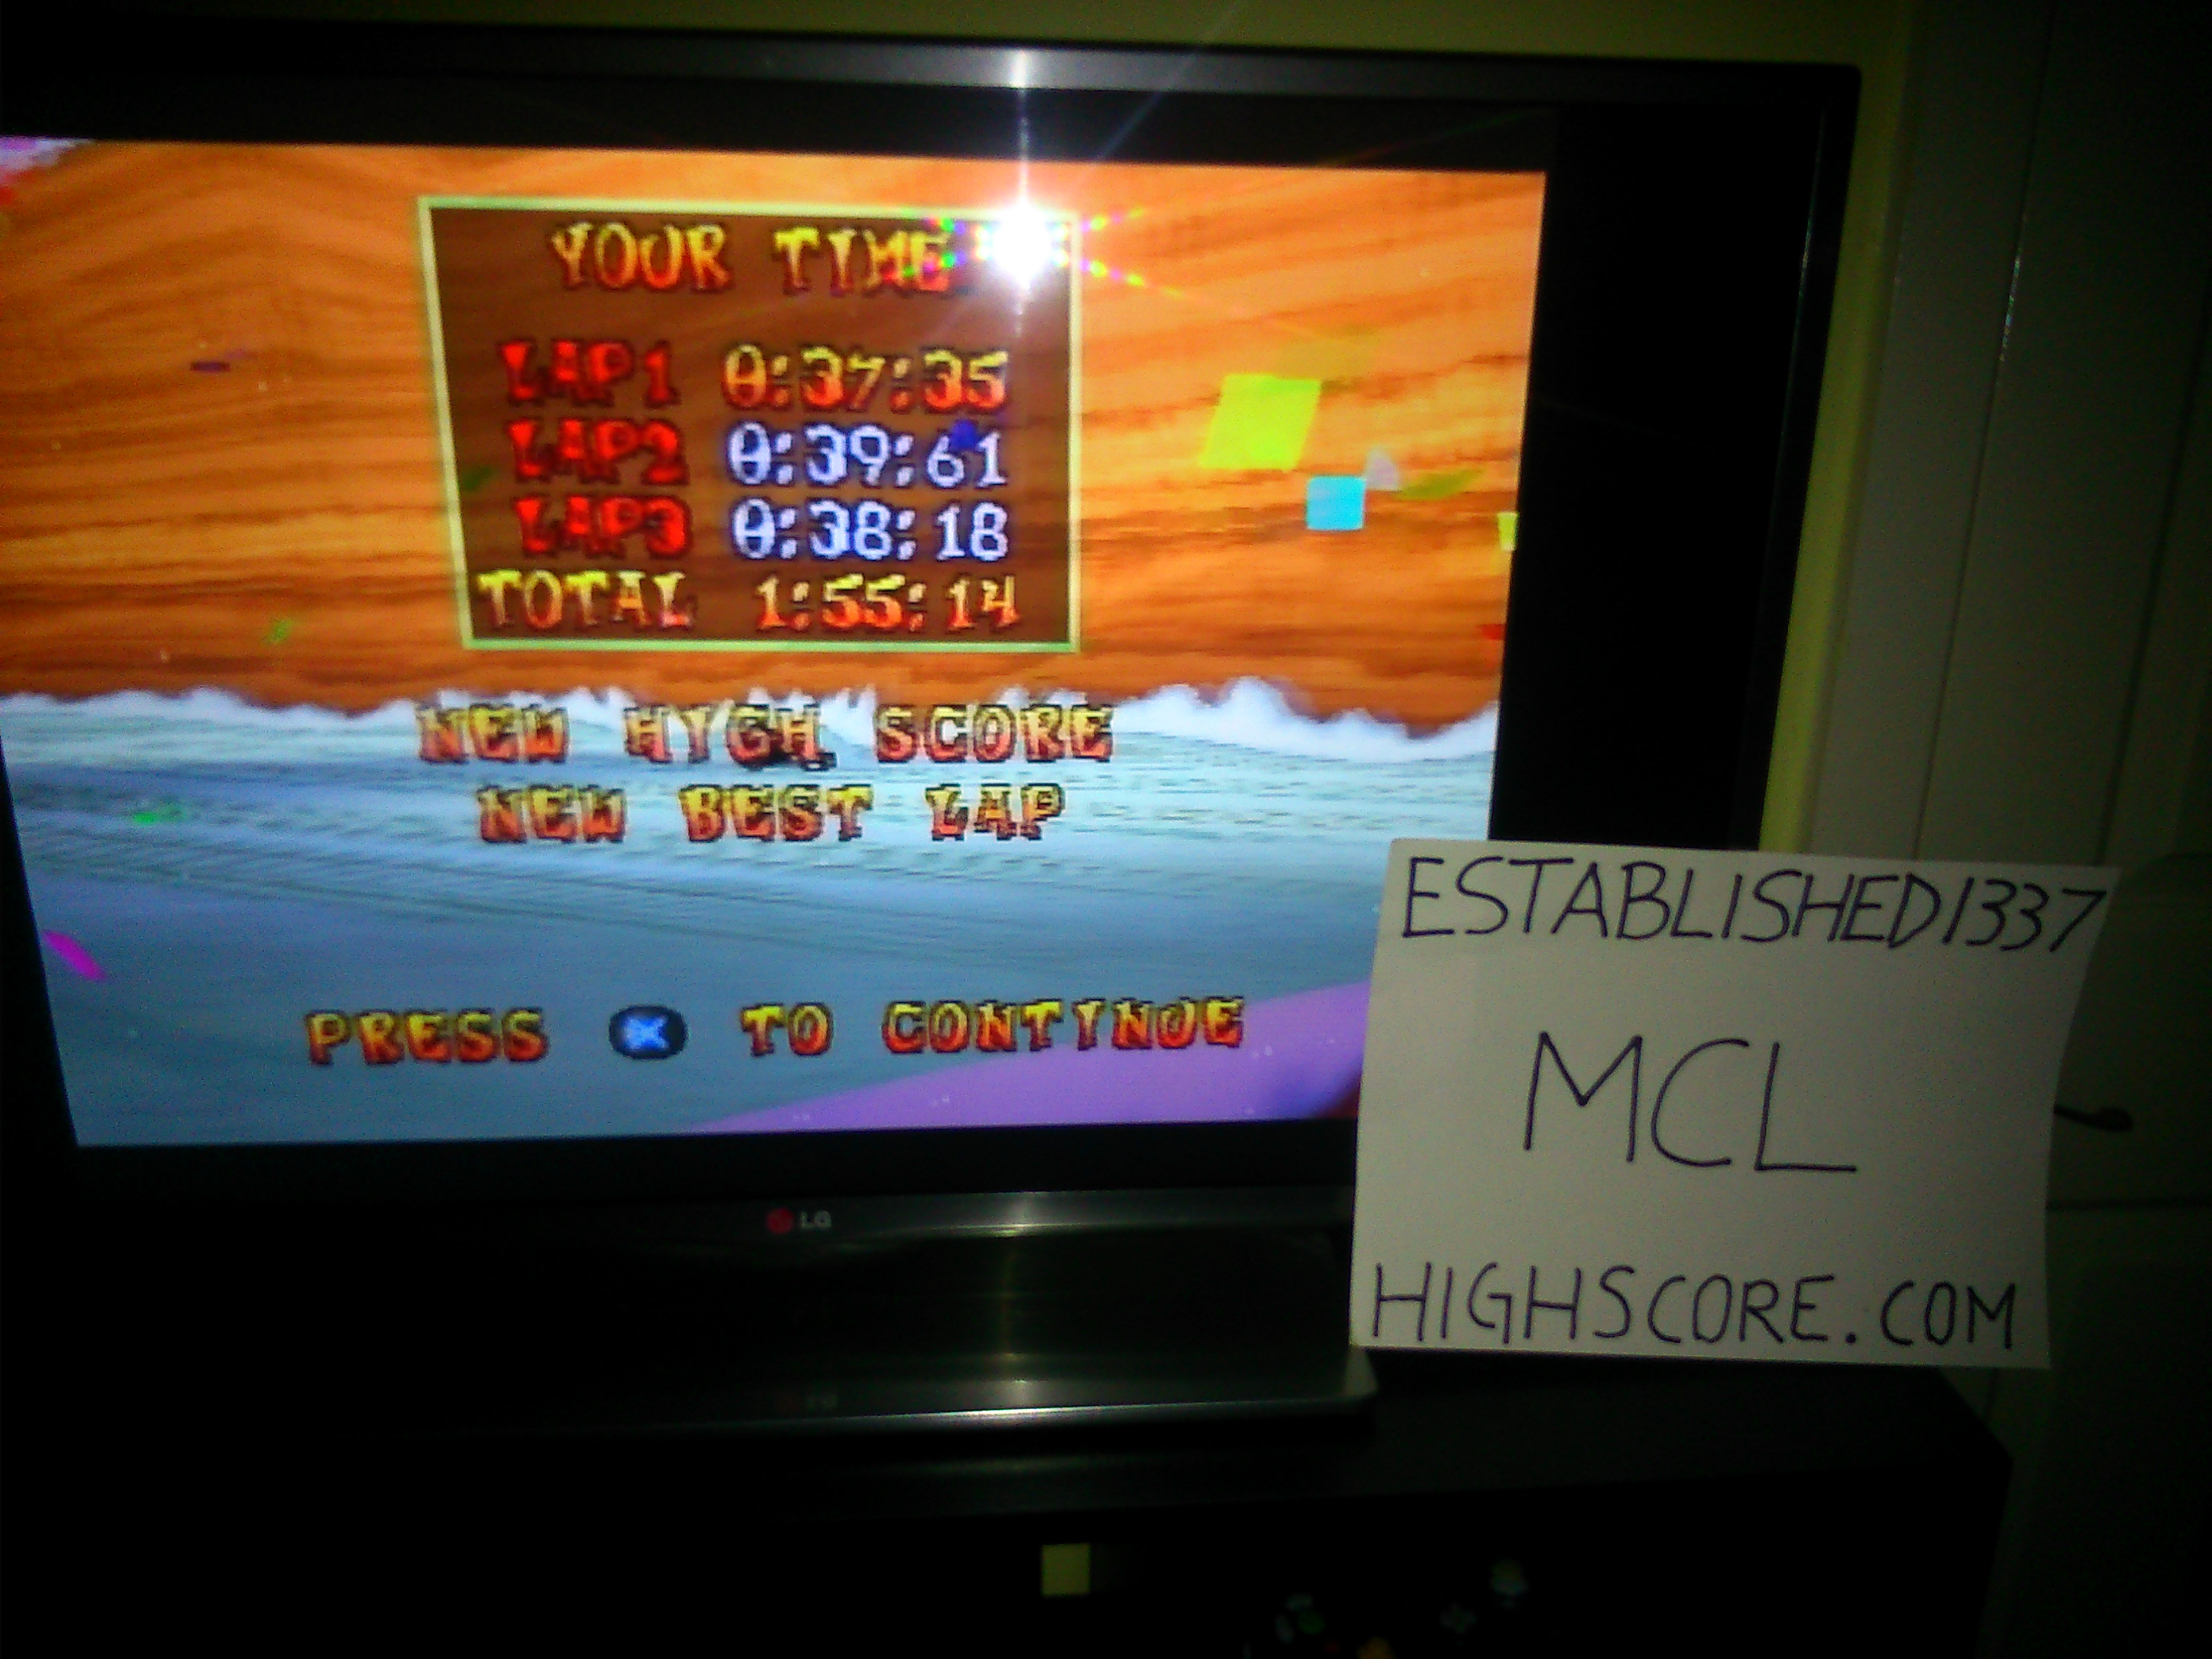 CTR Crash Team Racing: Time Trial: Blizzard Bluff [Race Time] time of 0:01:55.14